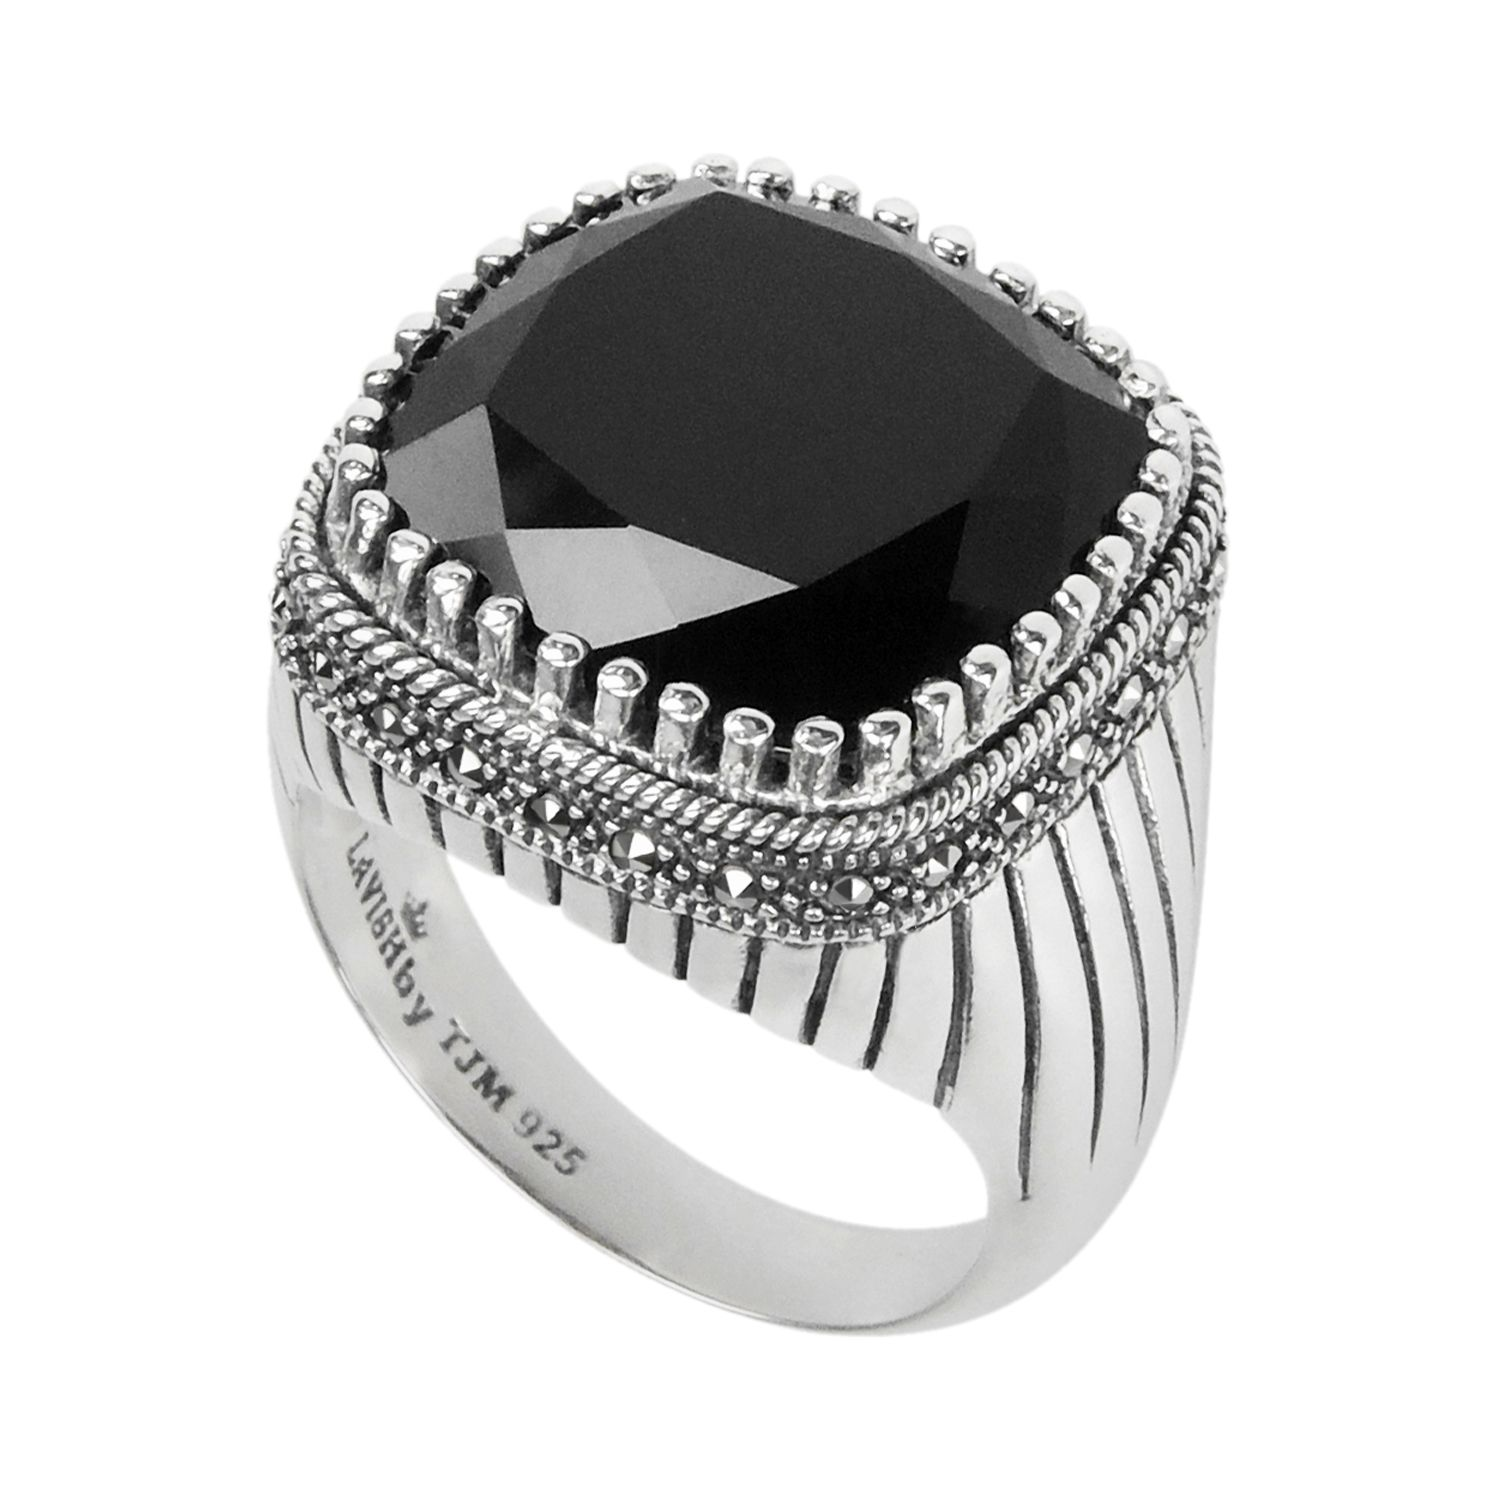 jewellery ring jewelry white kata gold product protea collection onyx